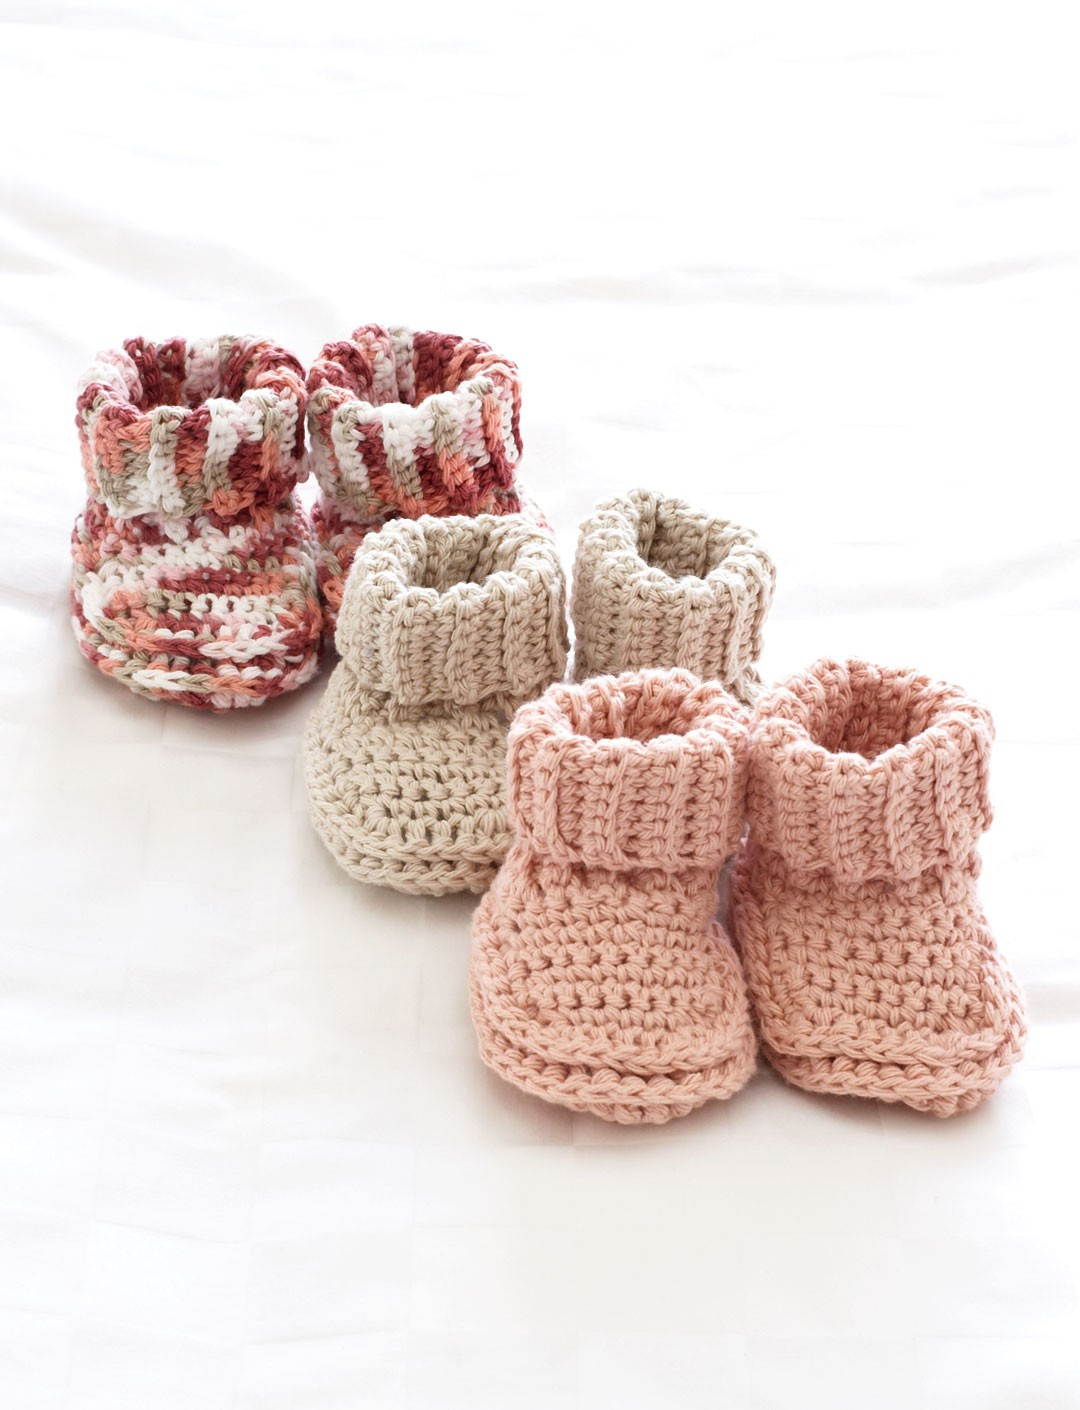 Babys booties patterns yarnspirations babys booties ccuart Choice Image